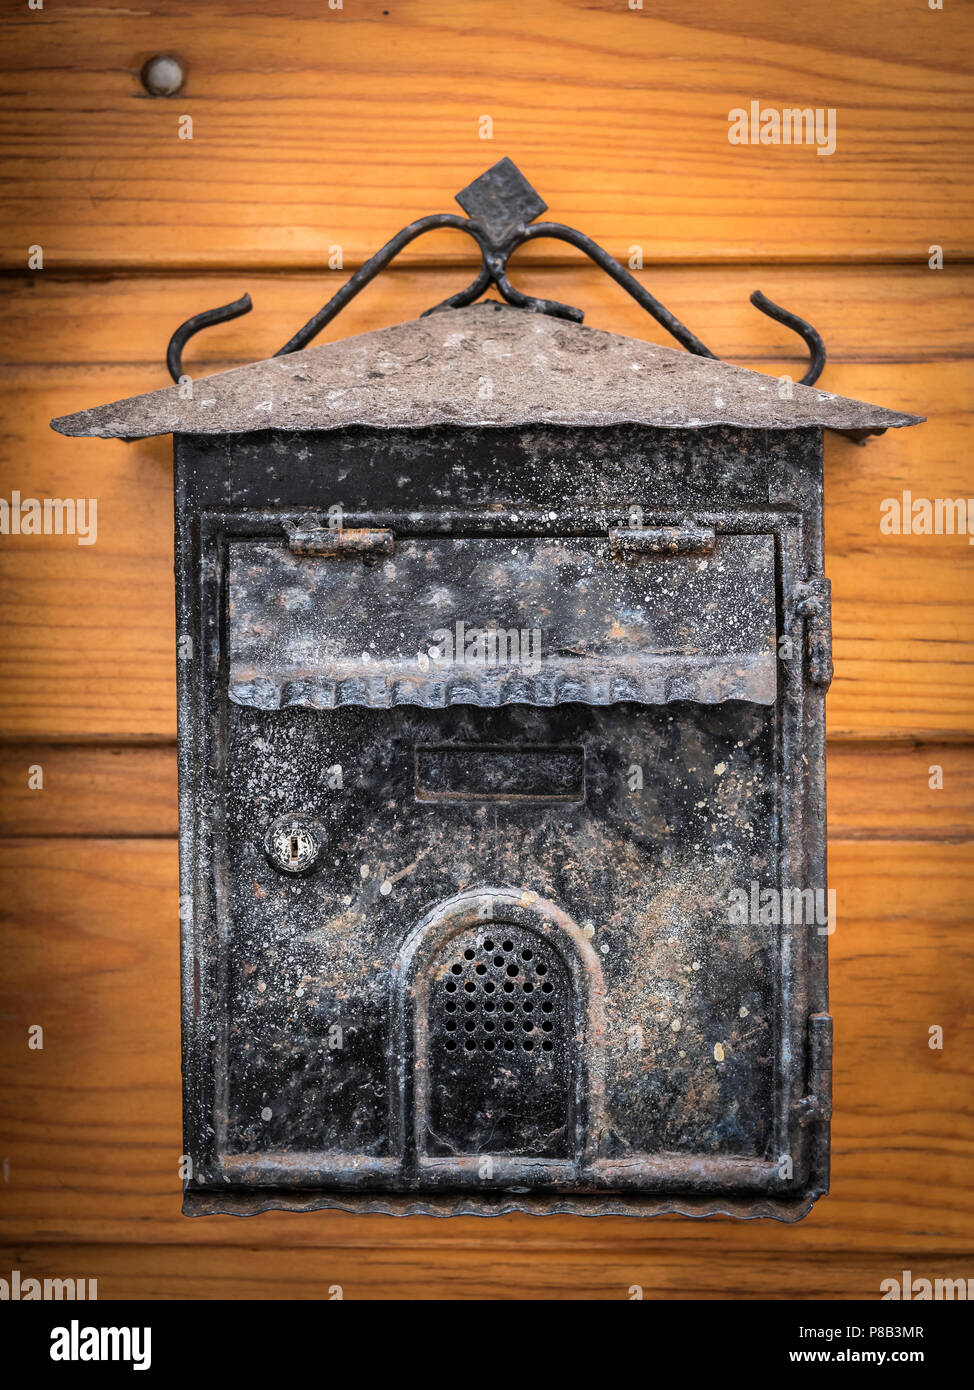 Old Weathered Mailbox Hanging On A Wooden Brown Door